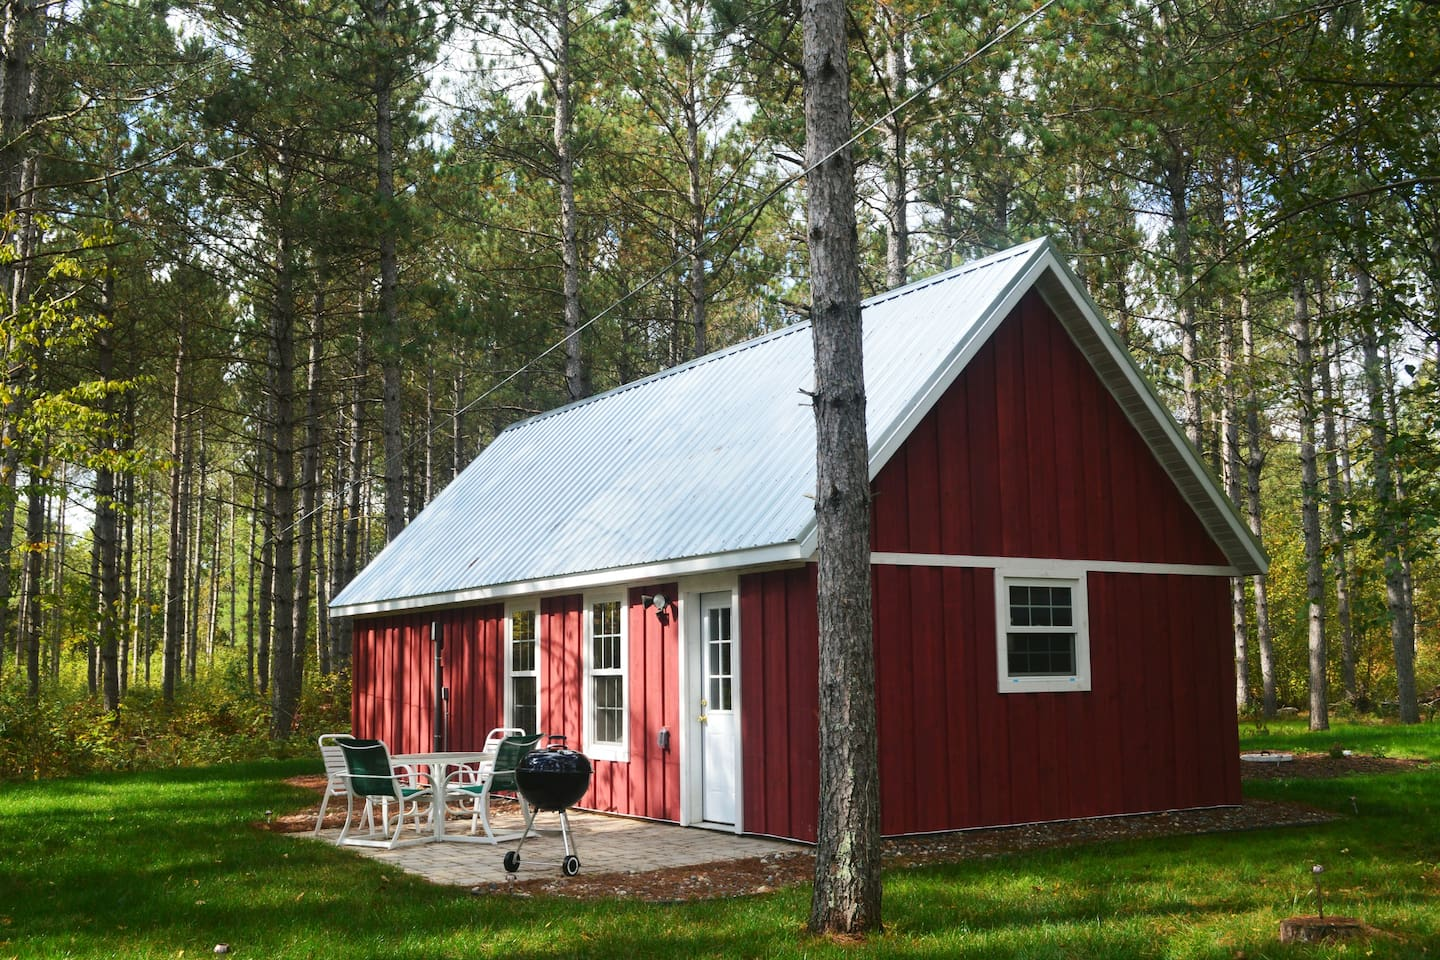 Little red cabin in the woods!